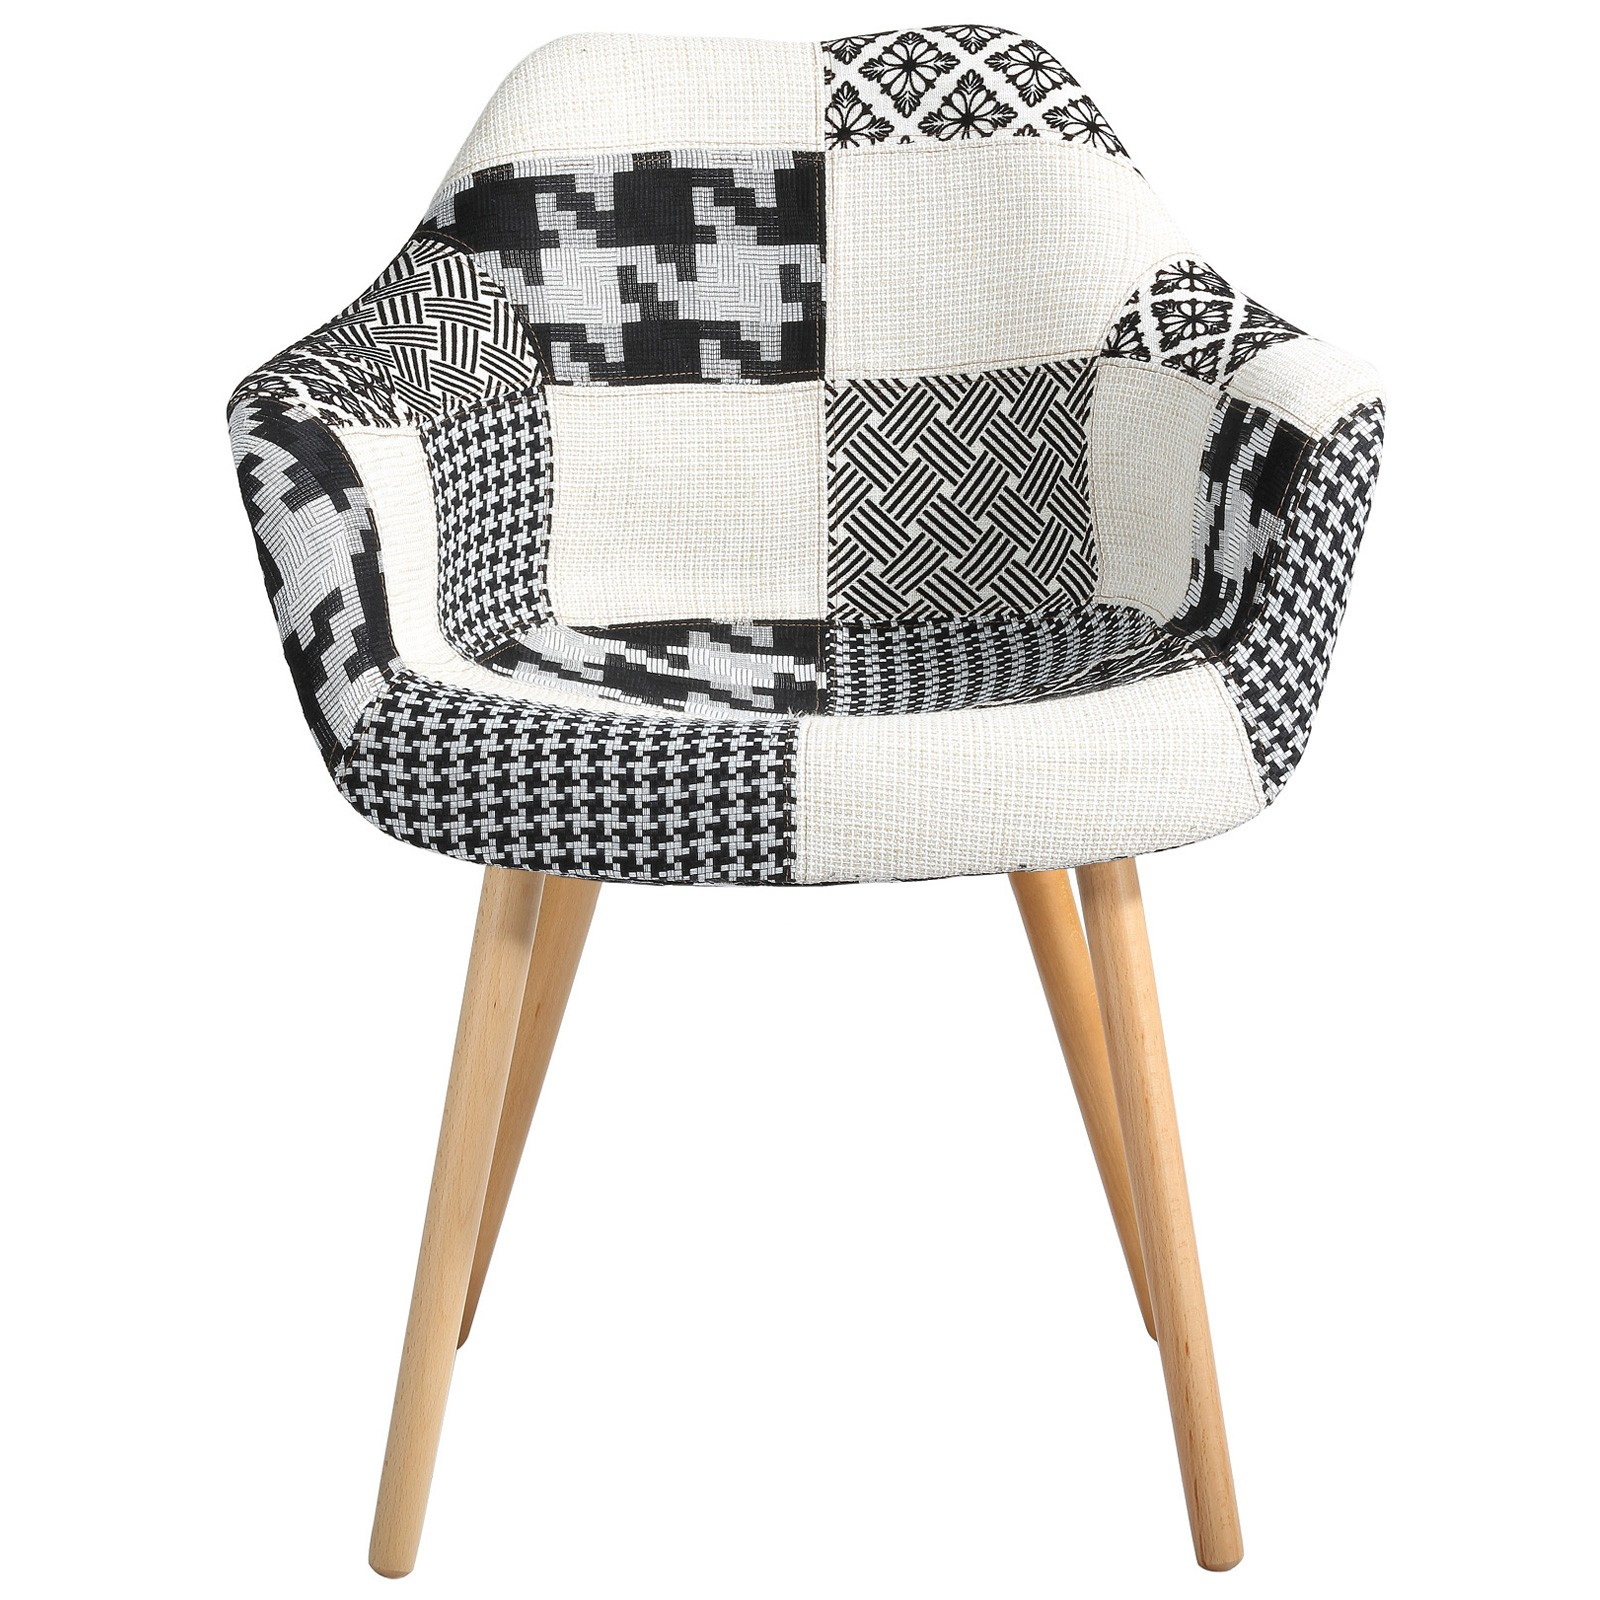 La Redoute Chaises Scandinaves Chaise Scandinave Patchwork